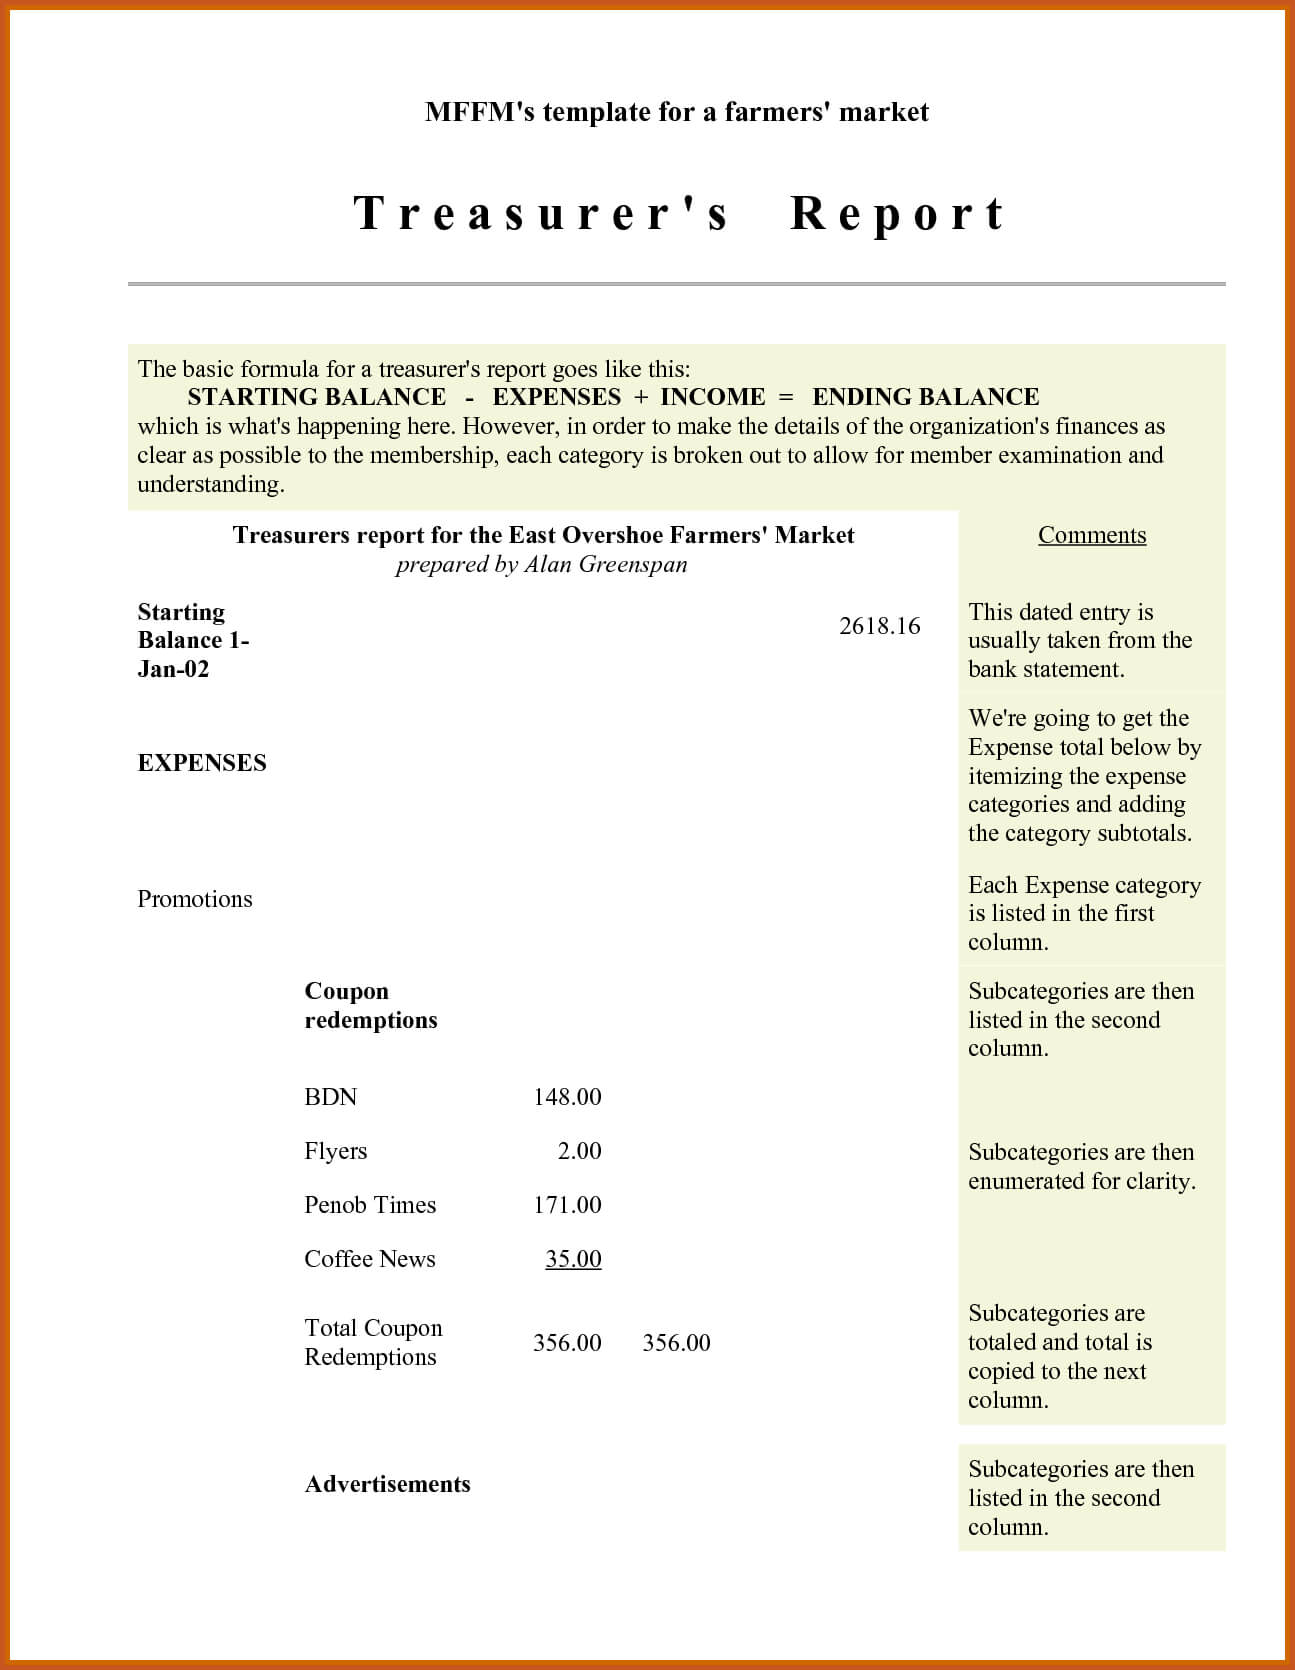 015 Treasurer Report Template Non Profit Ideas Treasurers For Non Profit Treasurer Report Template